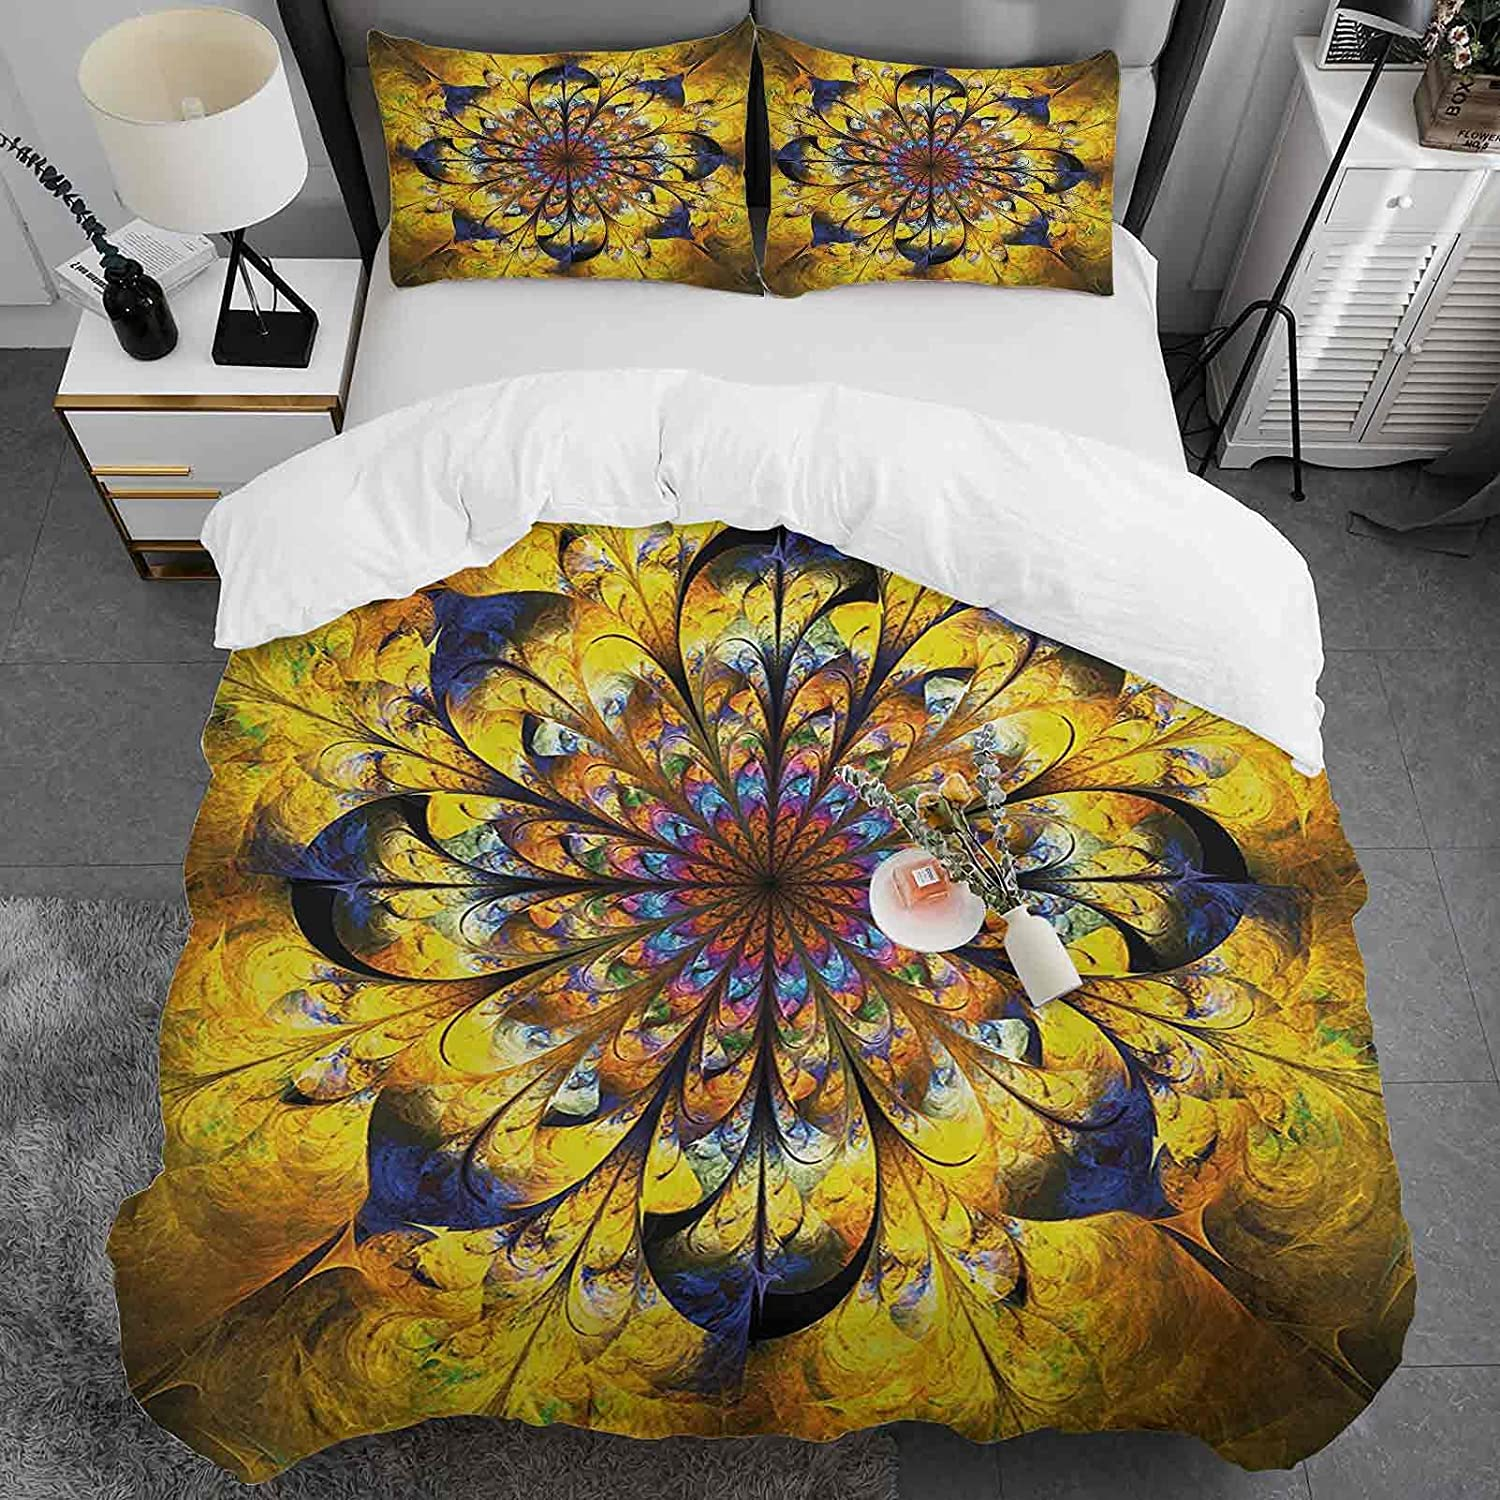 Popular overseas Yellow and Blue Cotton Duvet Cover Size Flora Golden 2021new shipping free Queen with